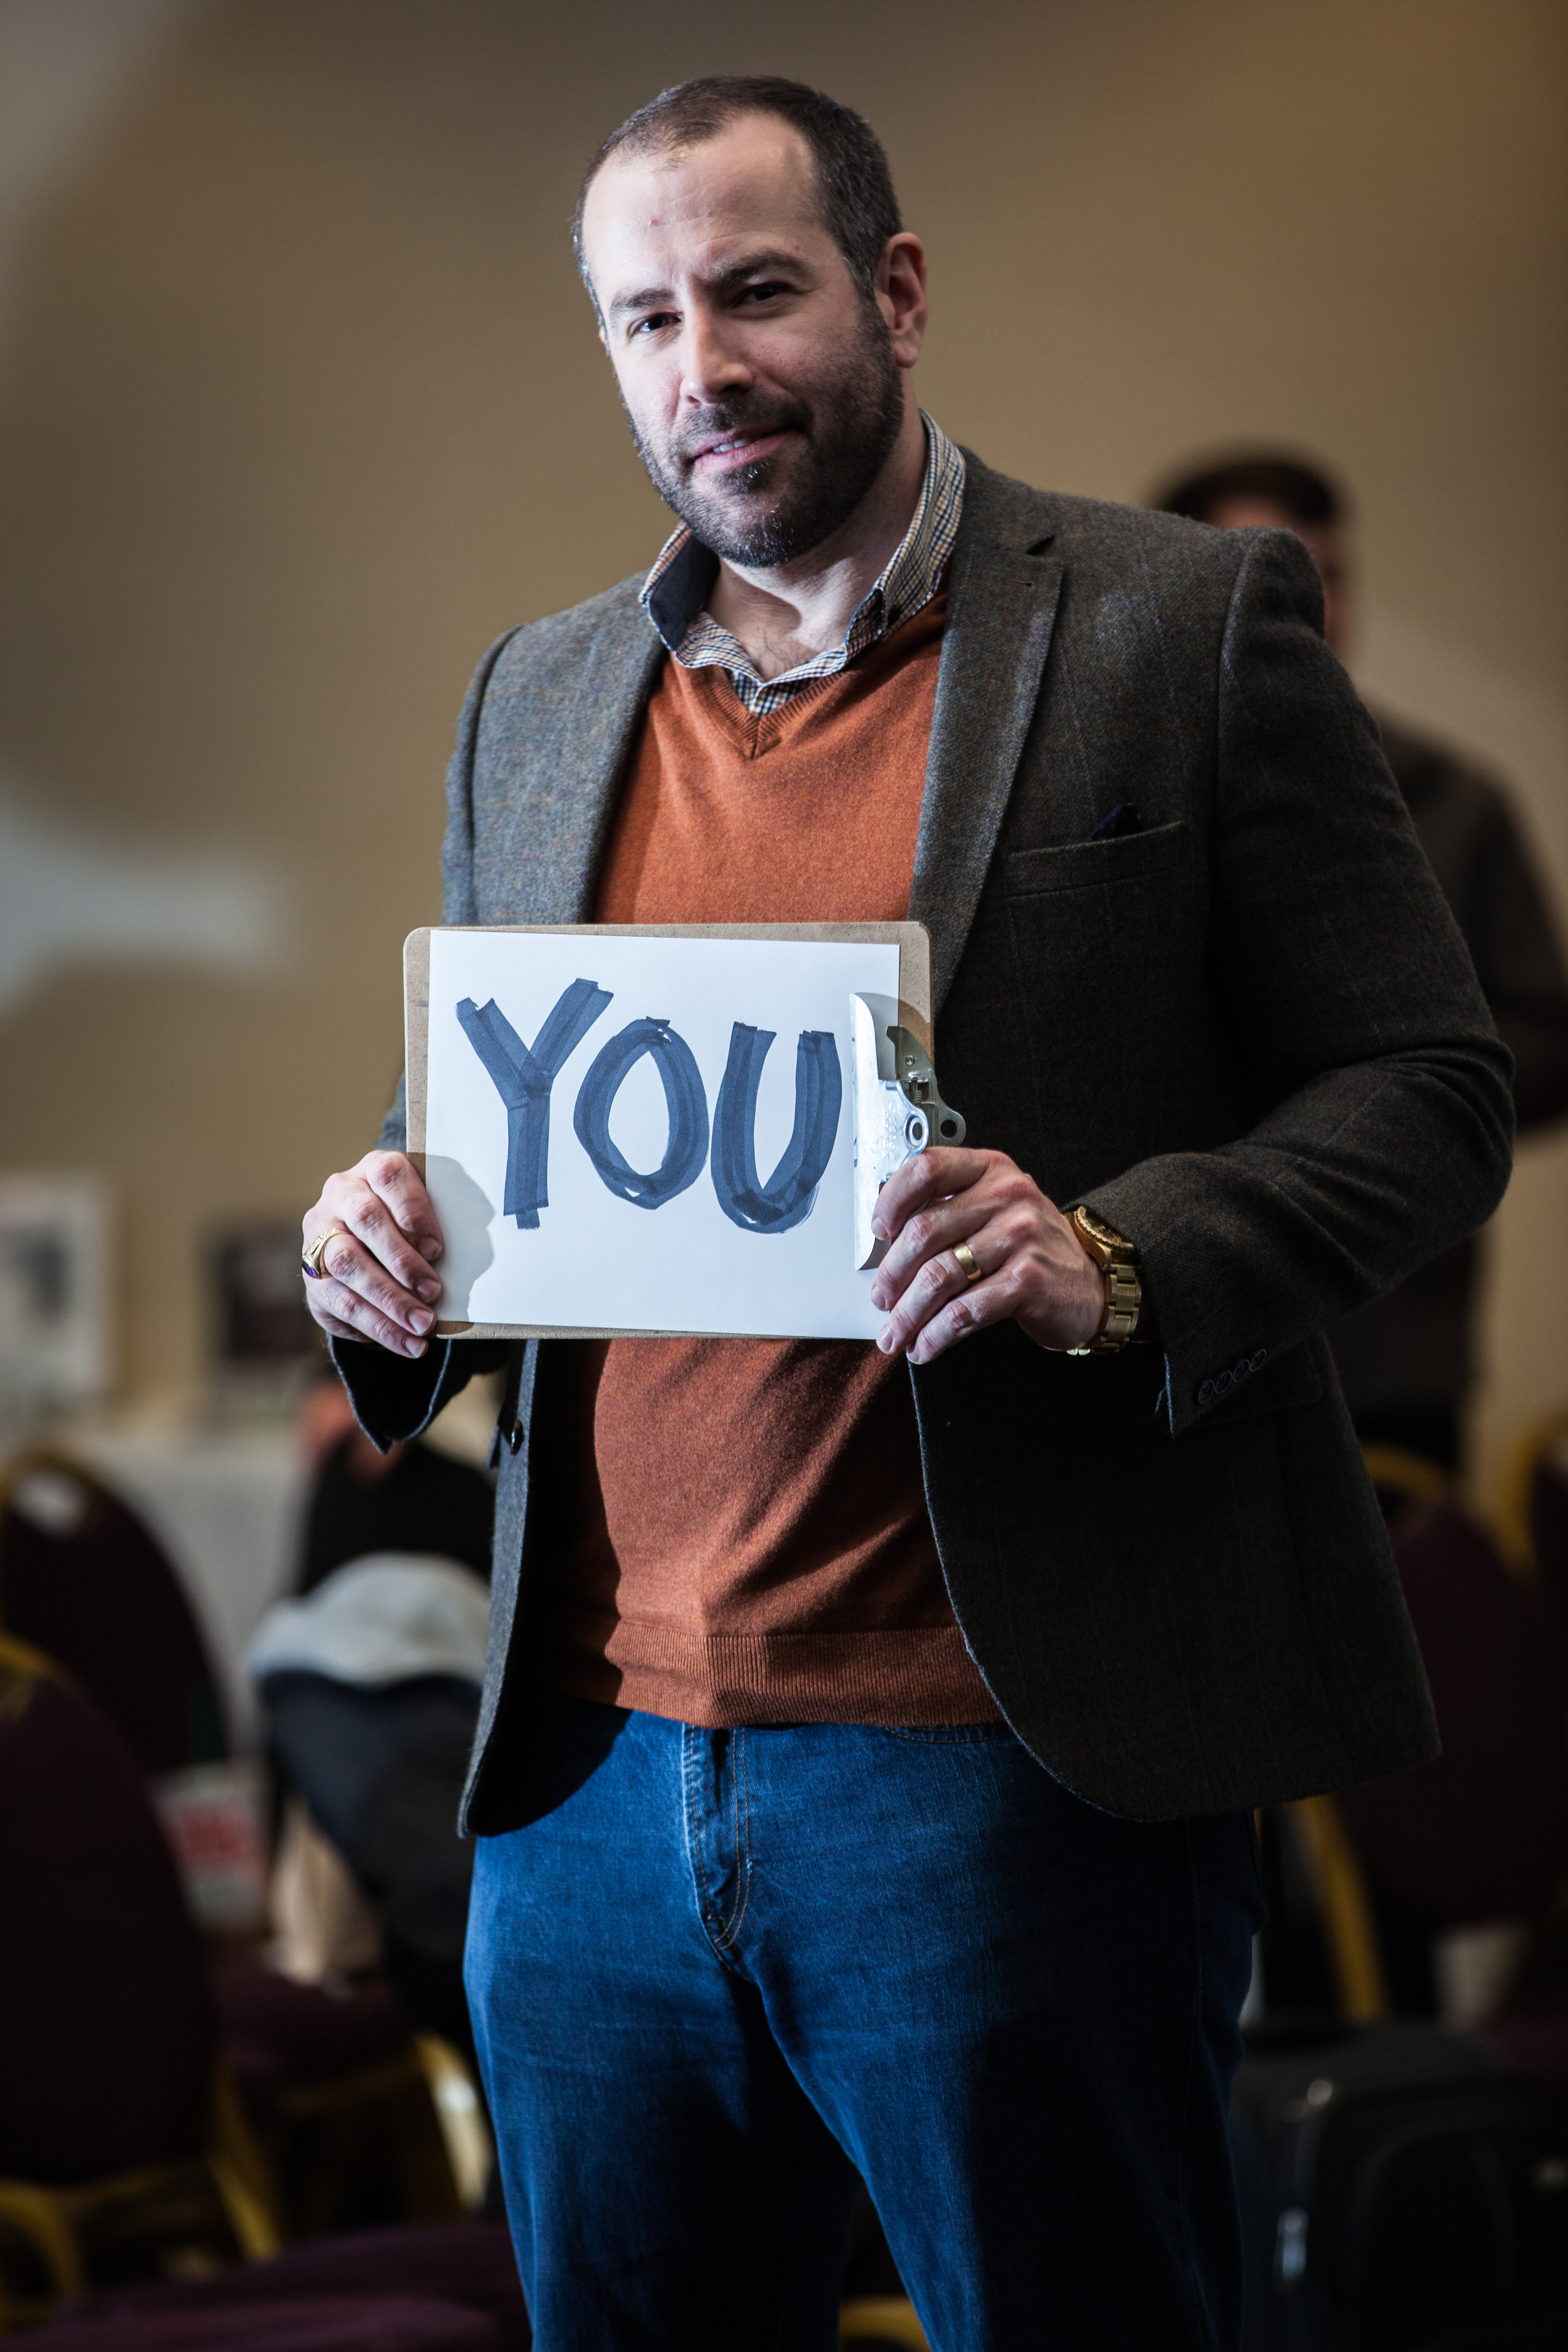 Man holding a sign saying you.